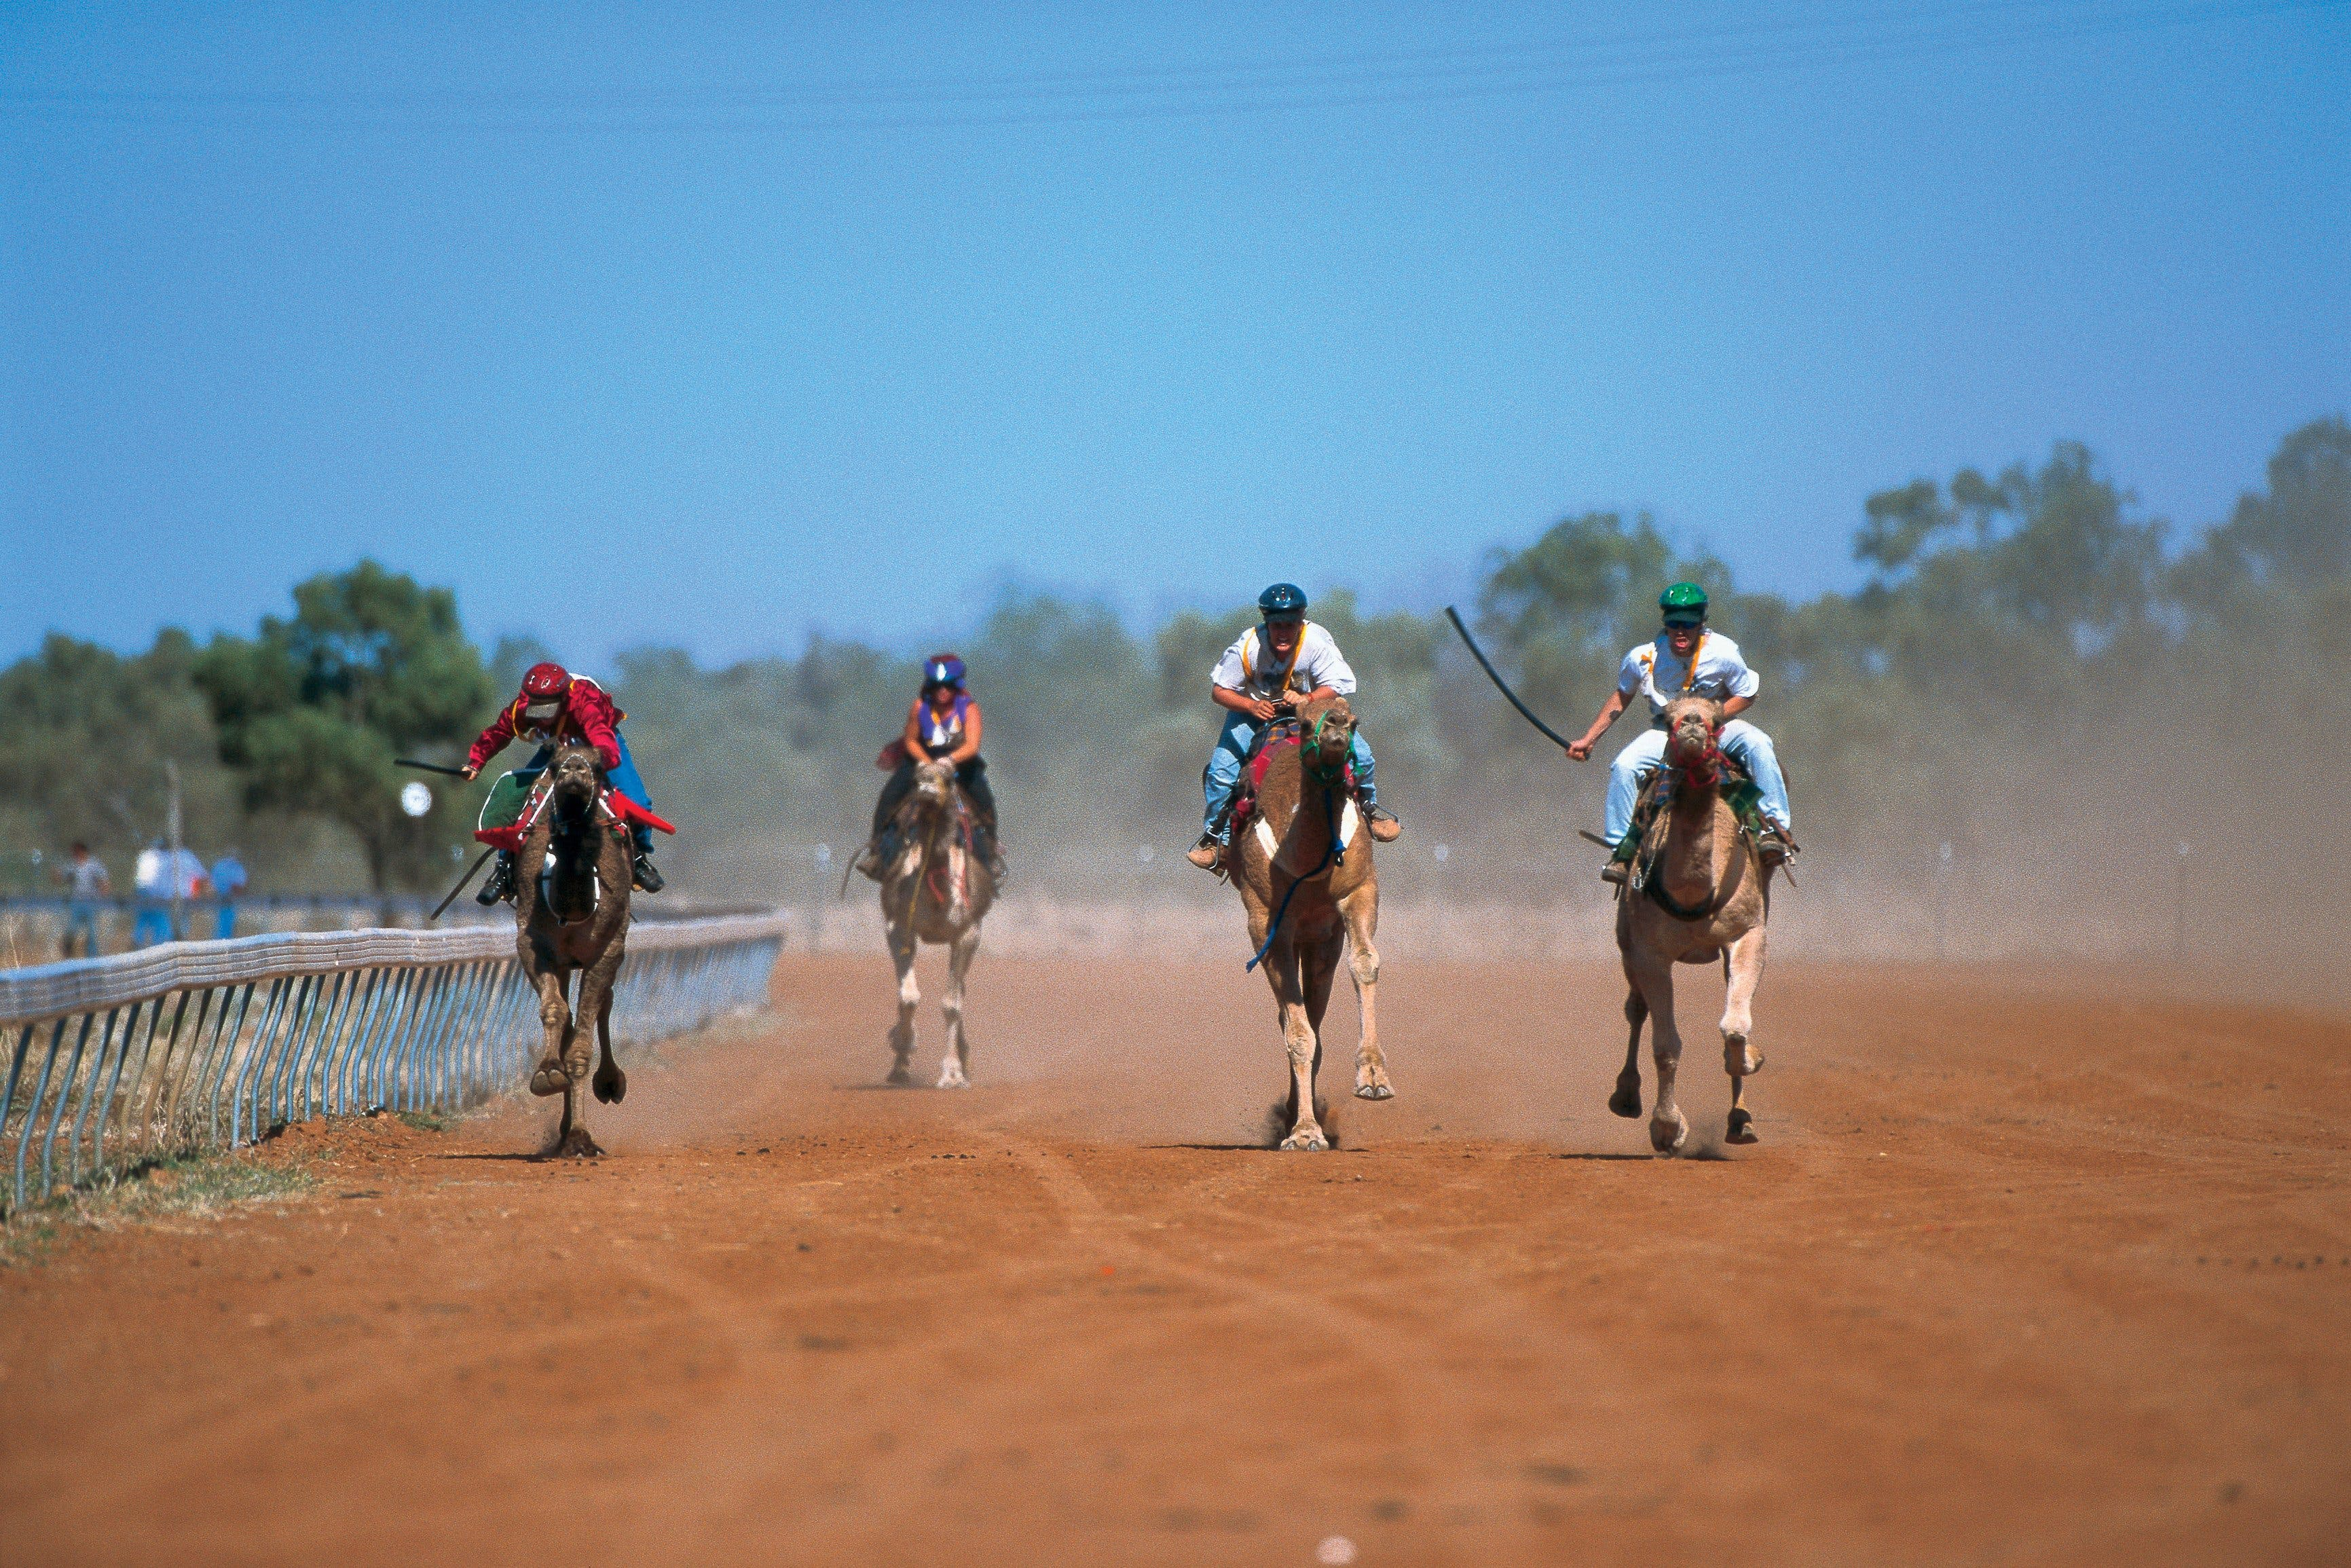 Outback Camel Festival Trail Logo and Images